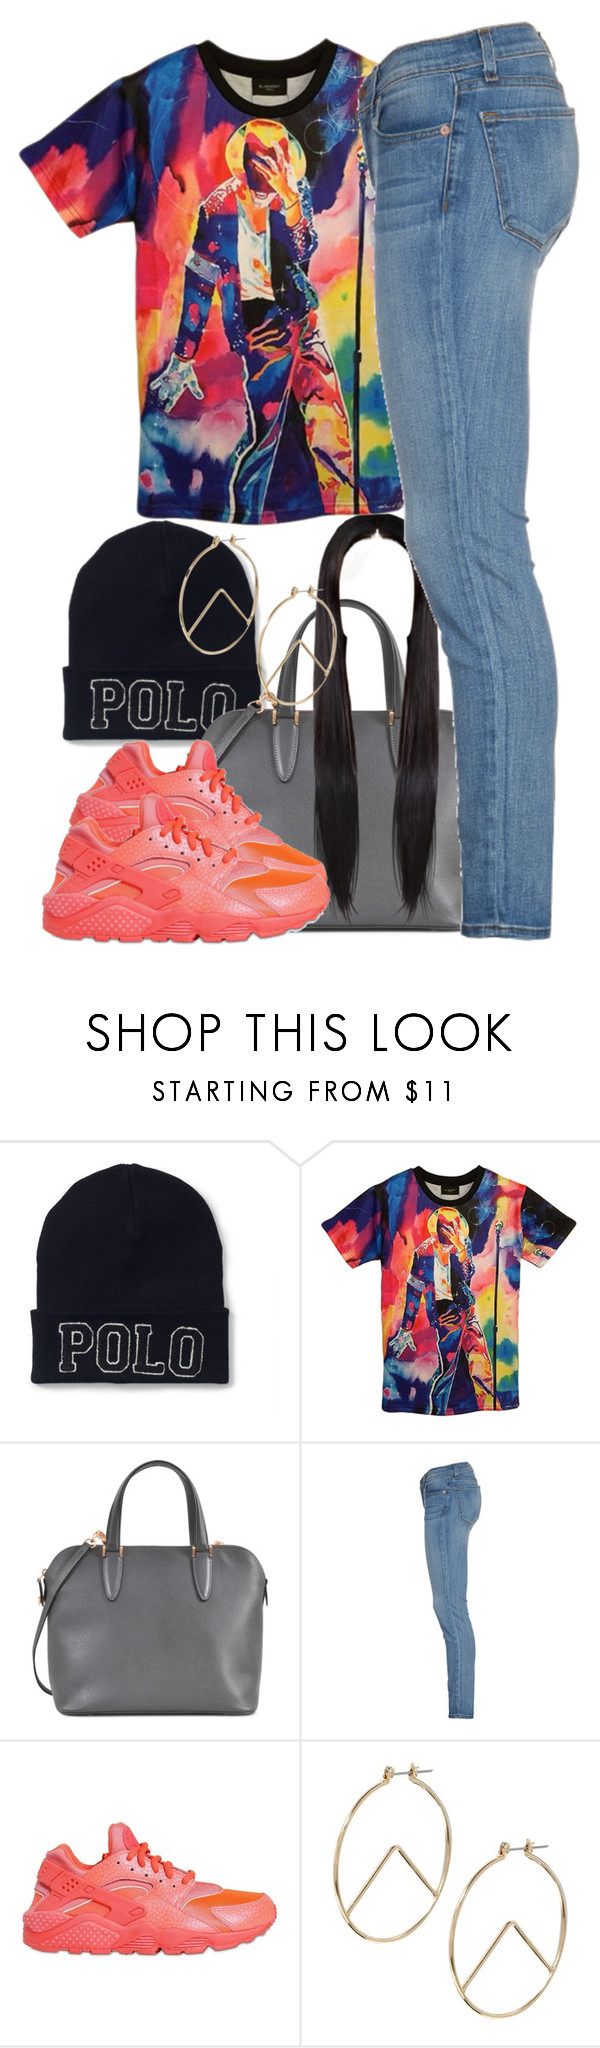 """Untitled #729"" by cjasmyne ❤ liked on Polyvore featuring Ralph Lauren, Valextra, J Brand, NIKE and ASOS"